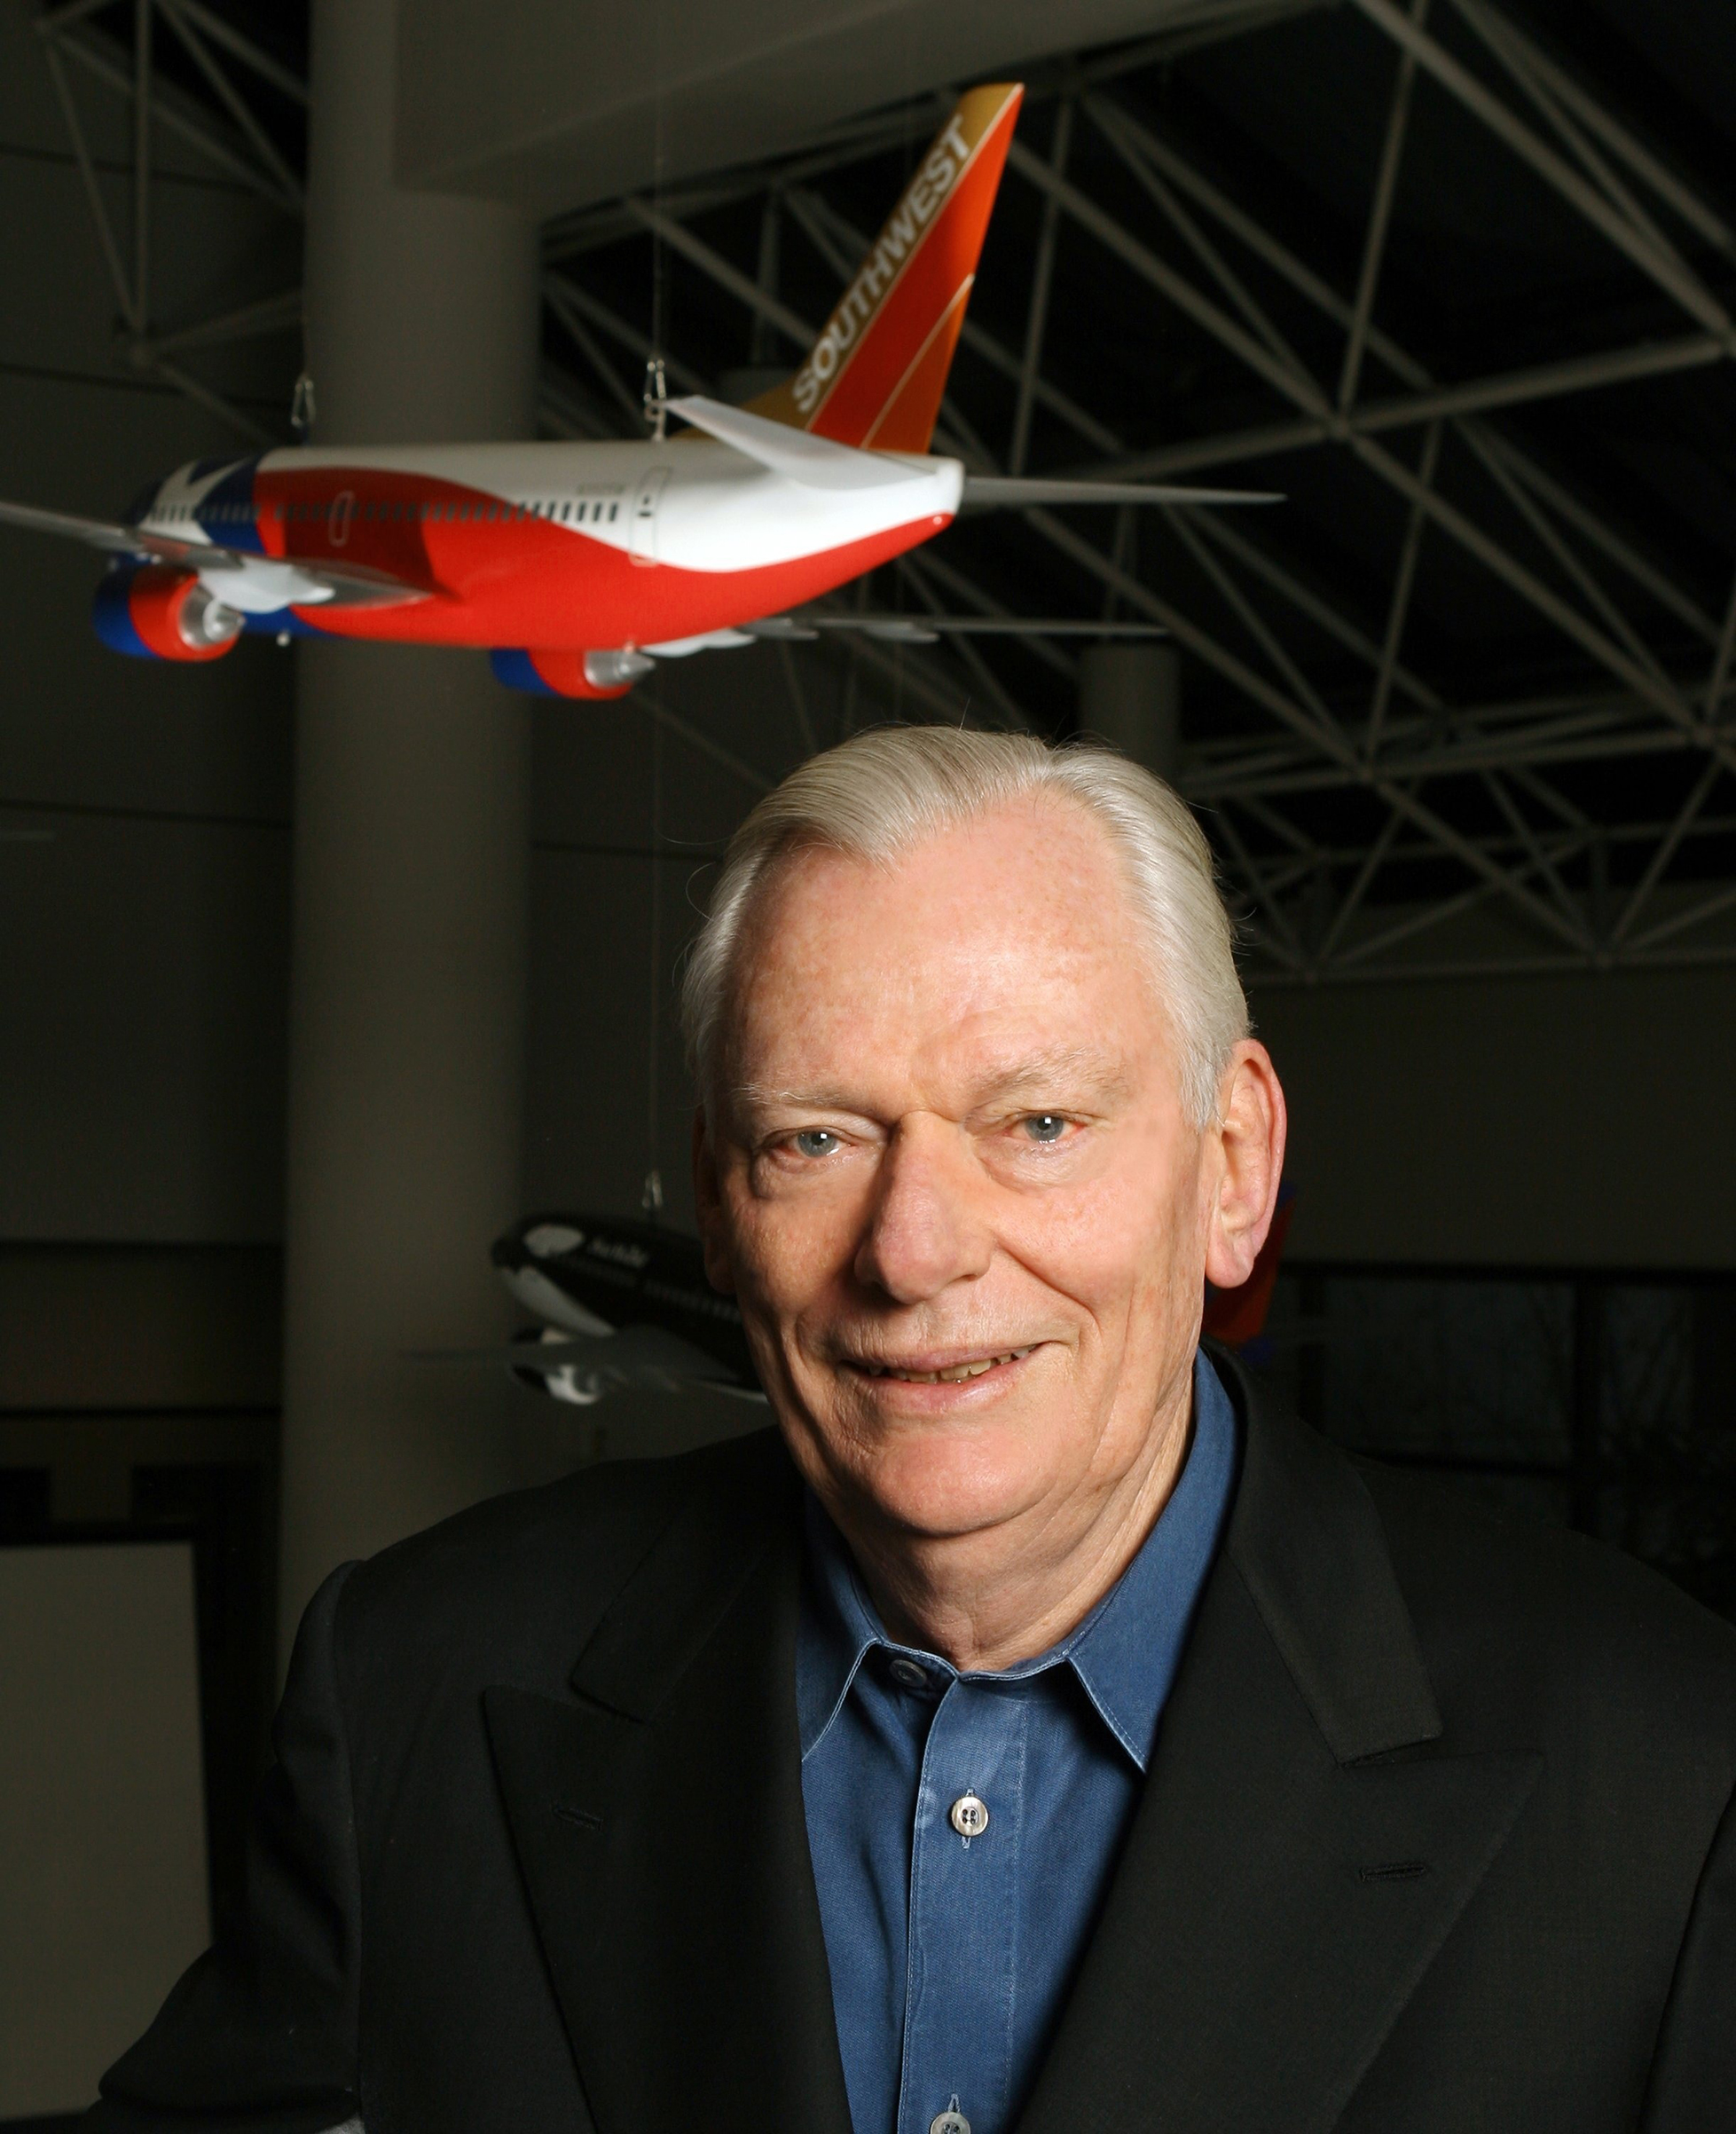 Kelleher, shown in 2005, was a prominent figure in the Dallas business community throughout his career